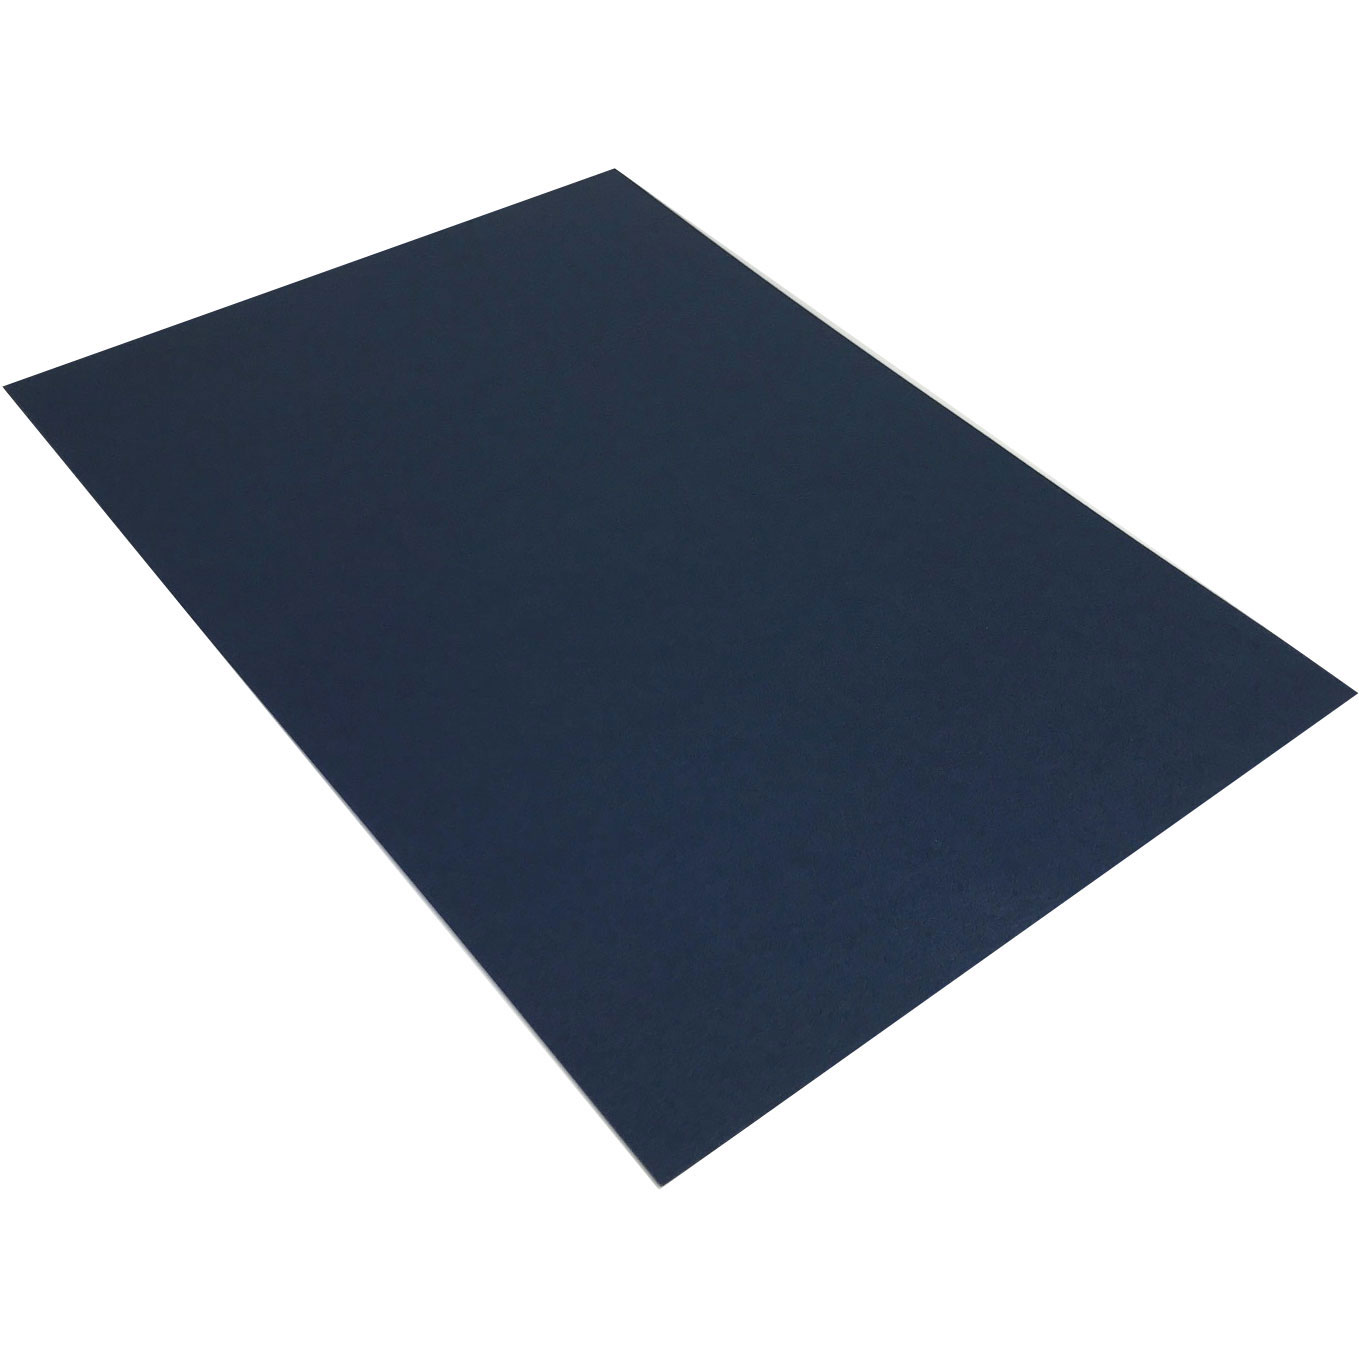 Fastback Dark Blue Binding Covers 400-410 (100)